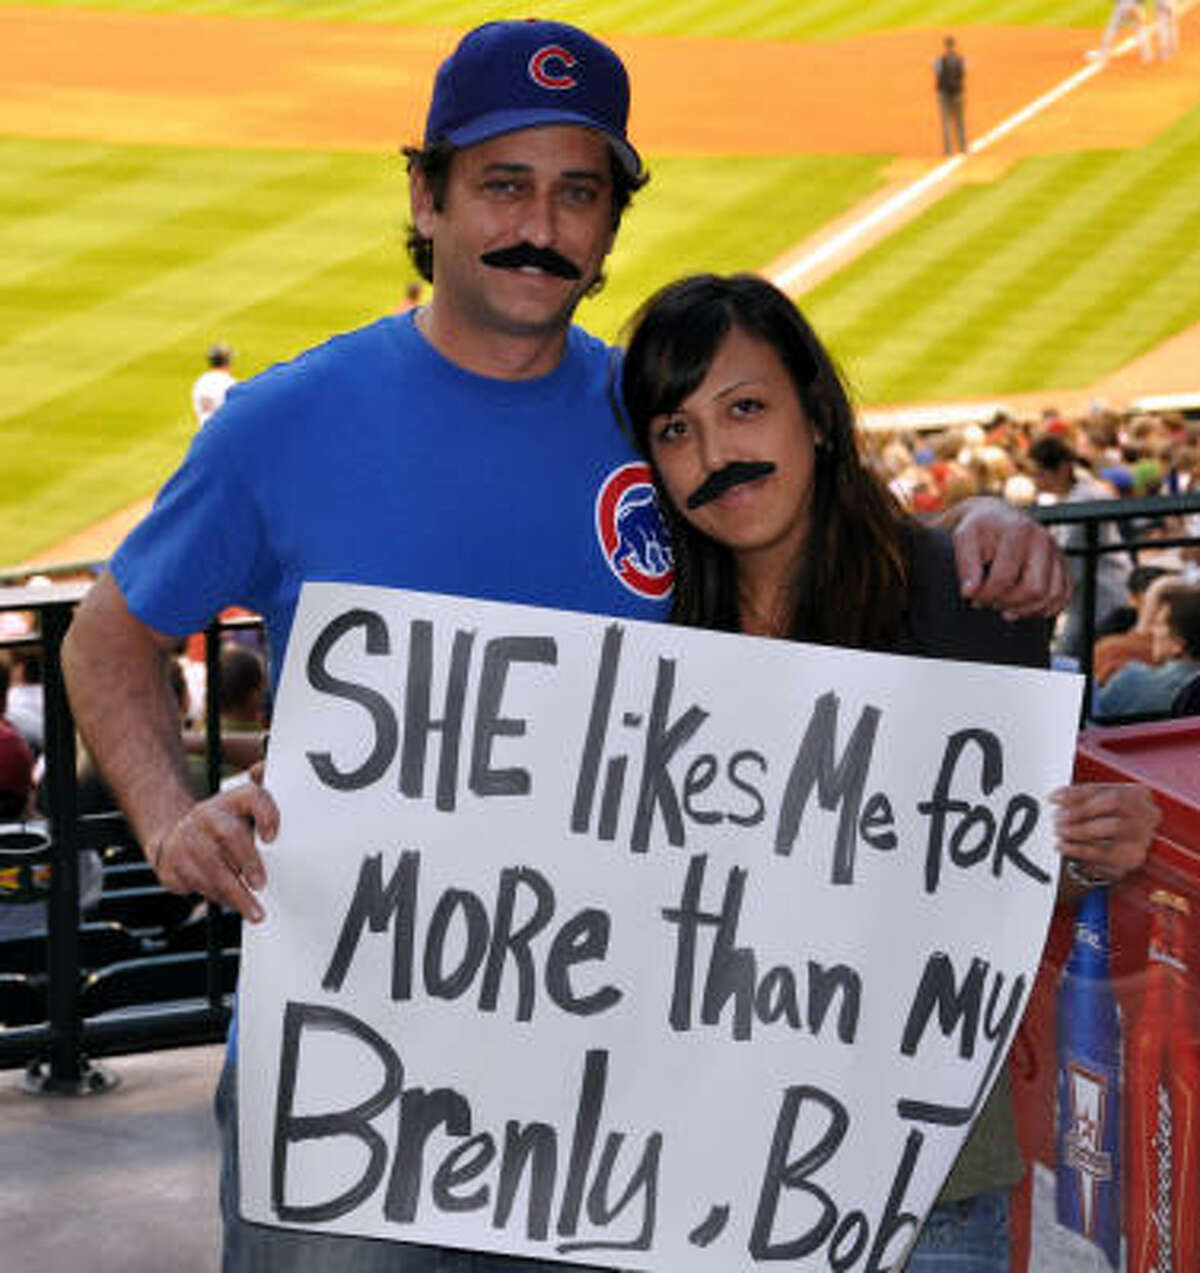 Mark Smith and Melissa Ybarra have a little fun with their matching mustaches.